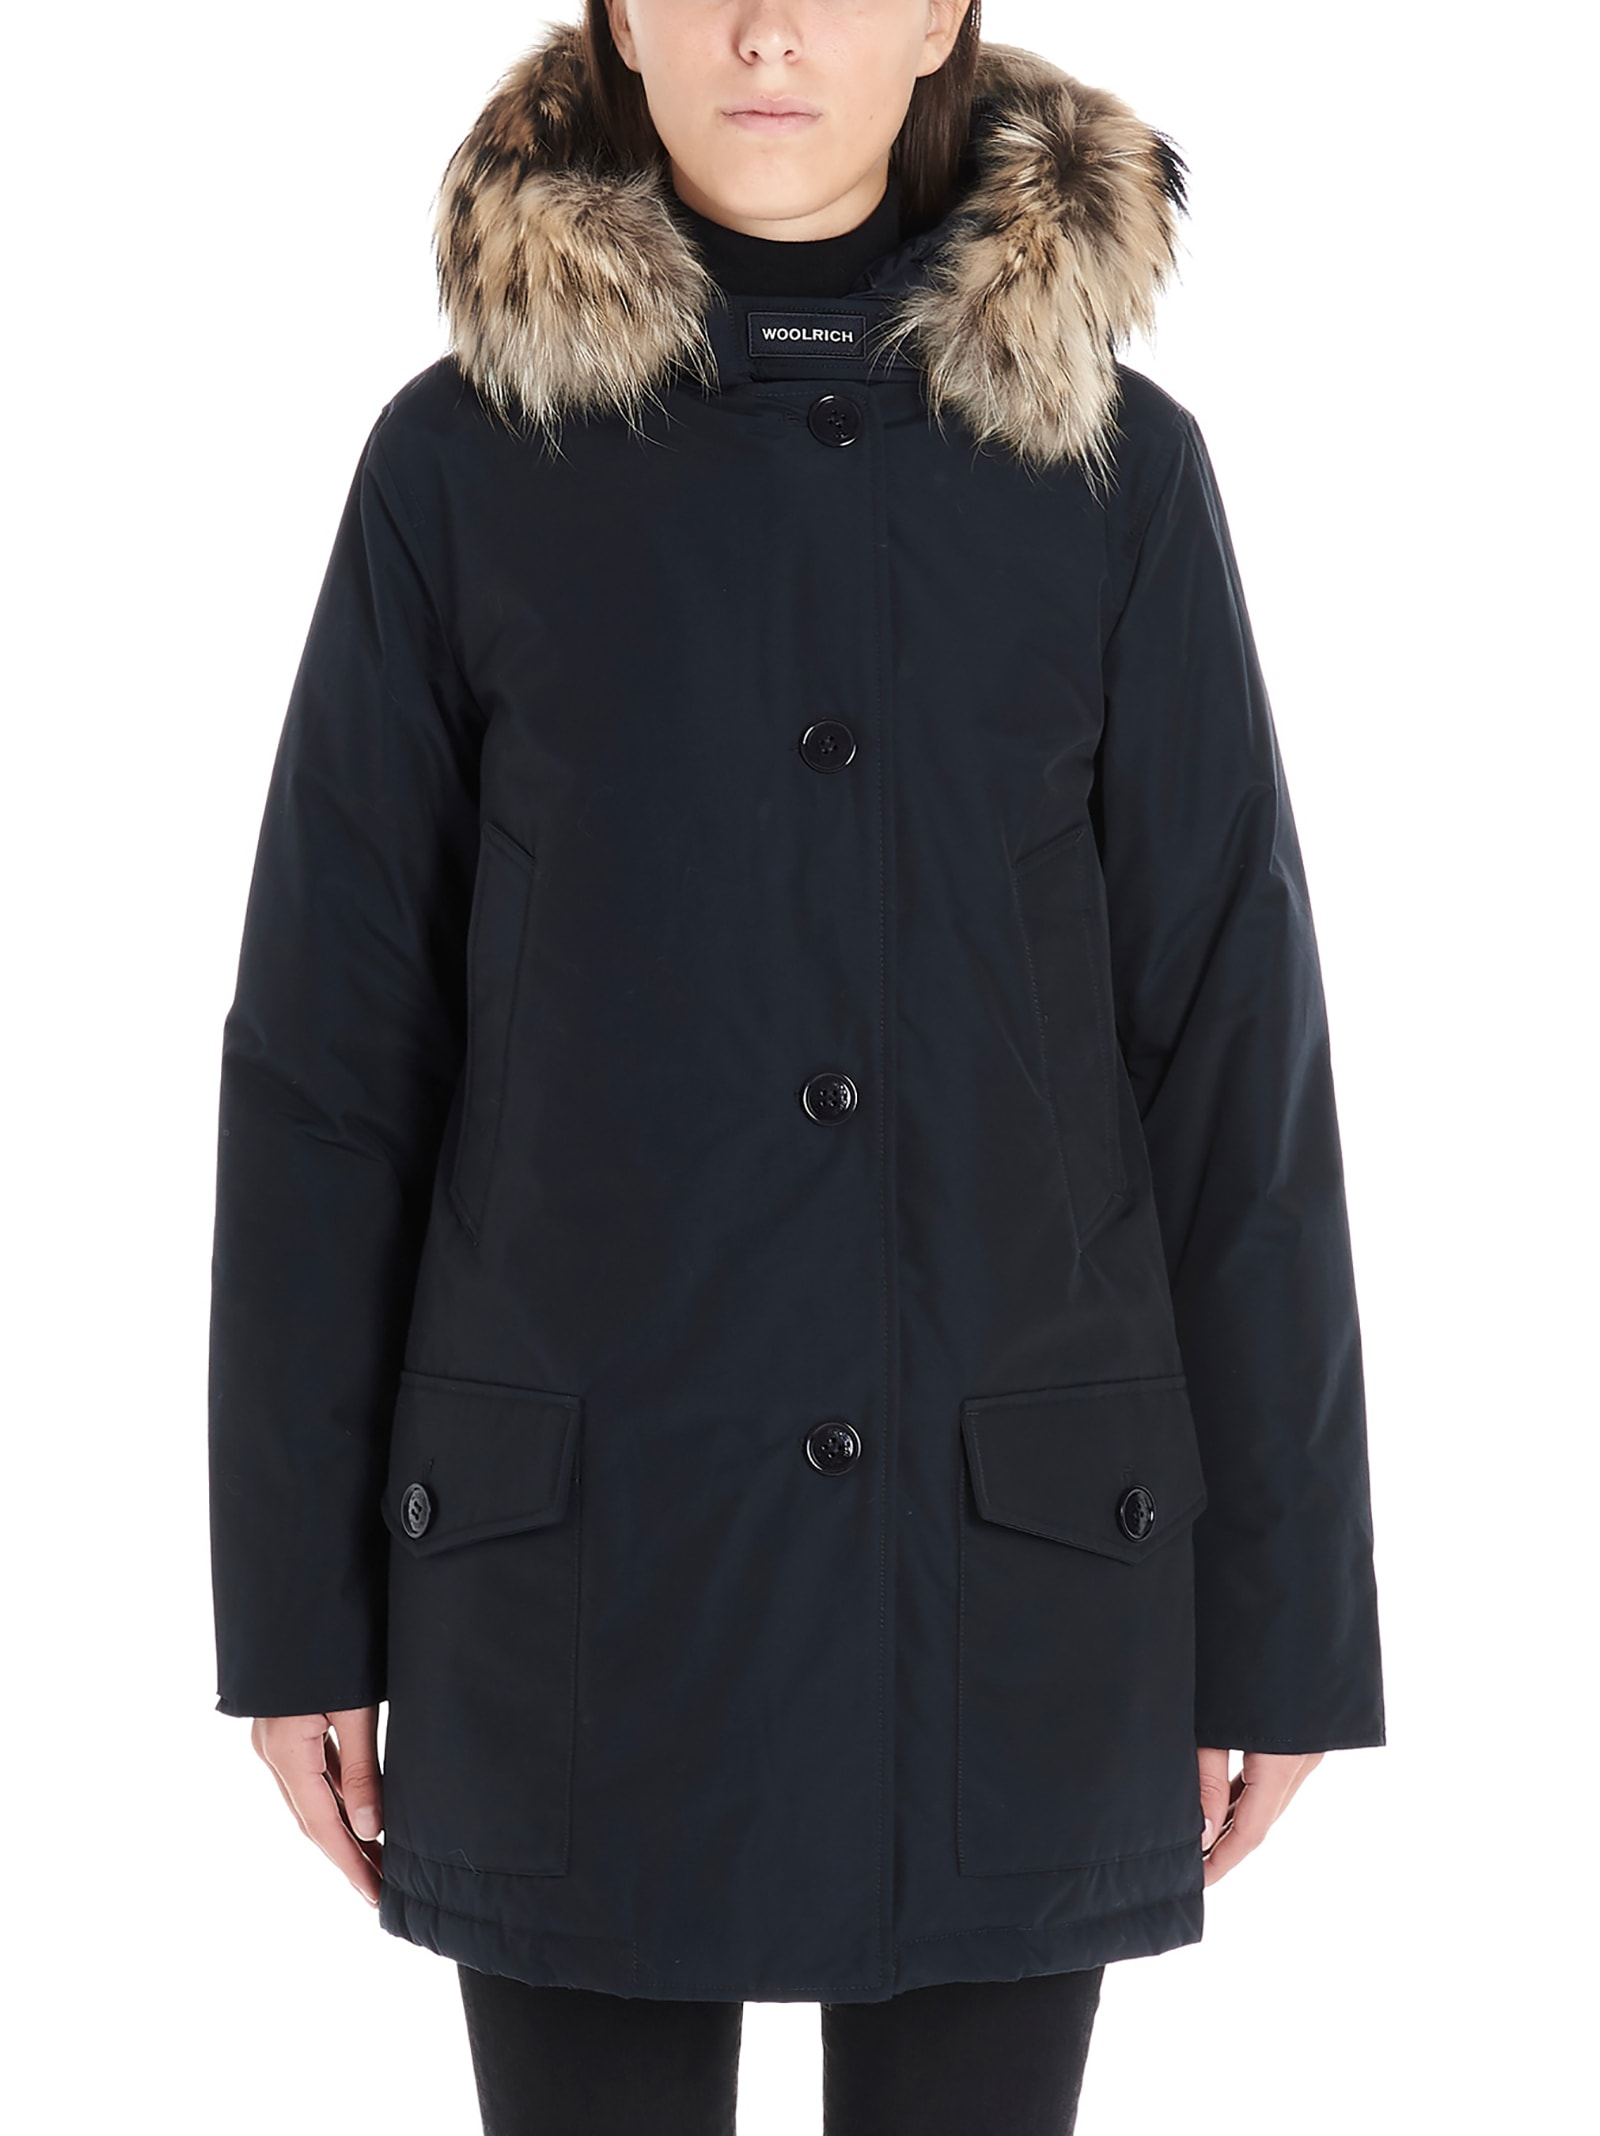 Photo of  Woolrich artic Df Acket- shop Woolrich jackets online sales